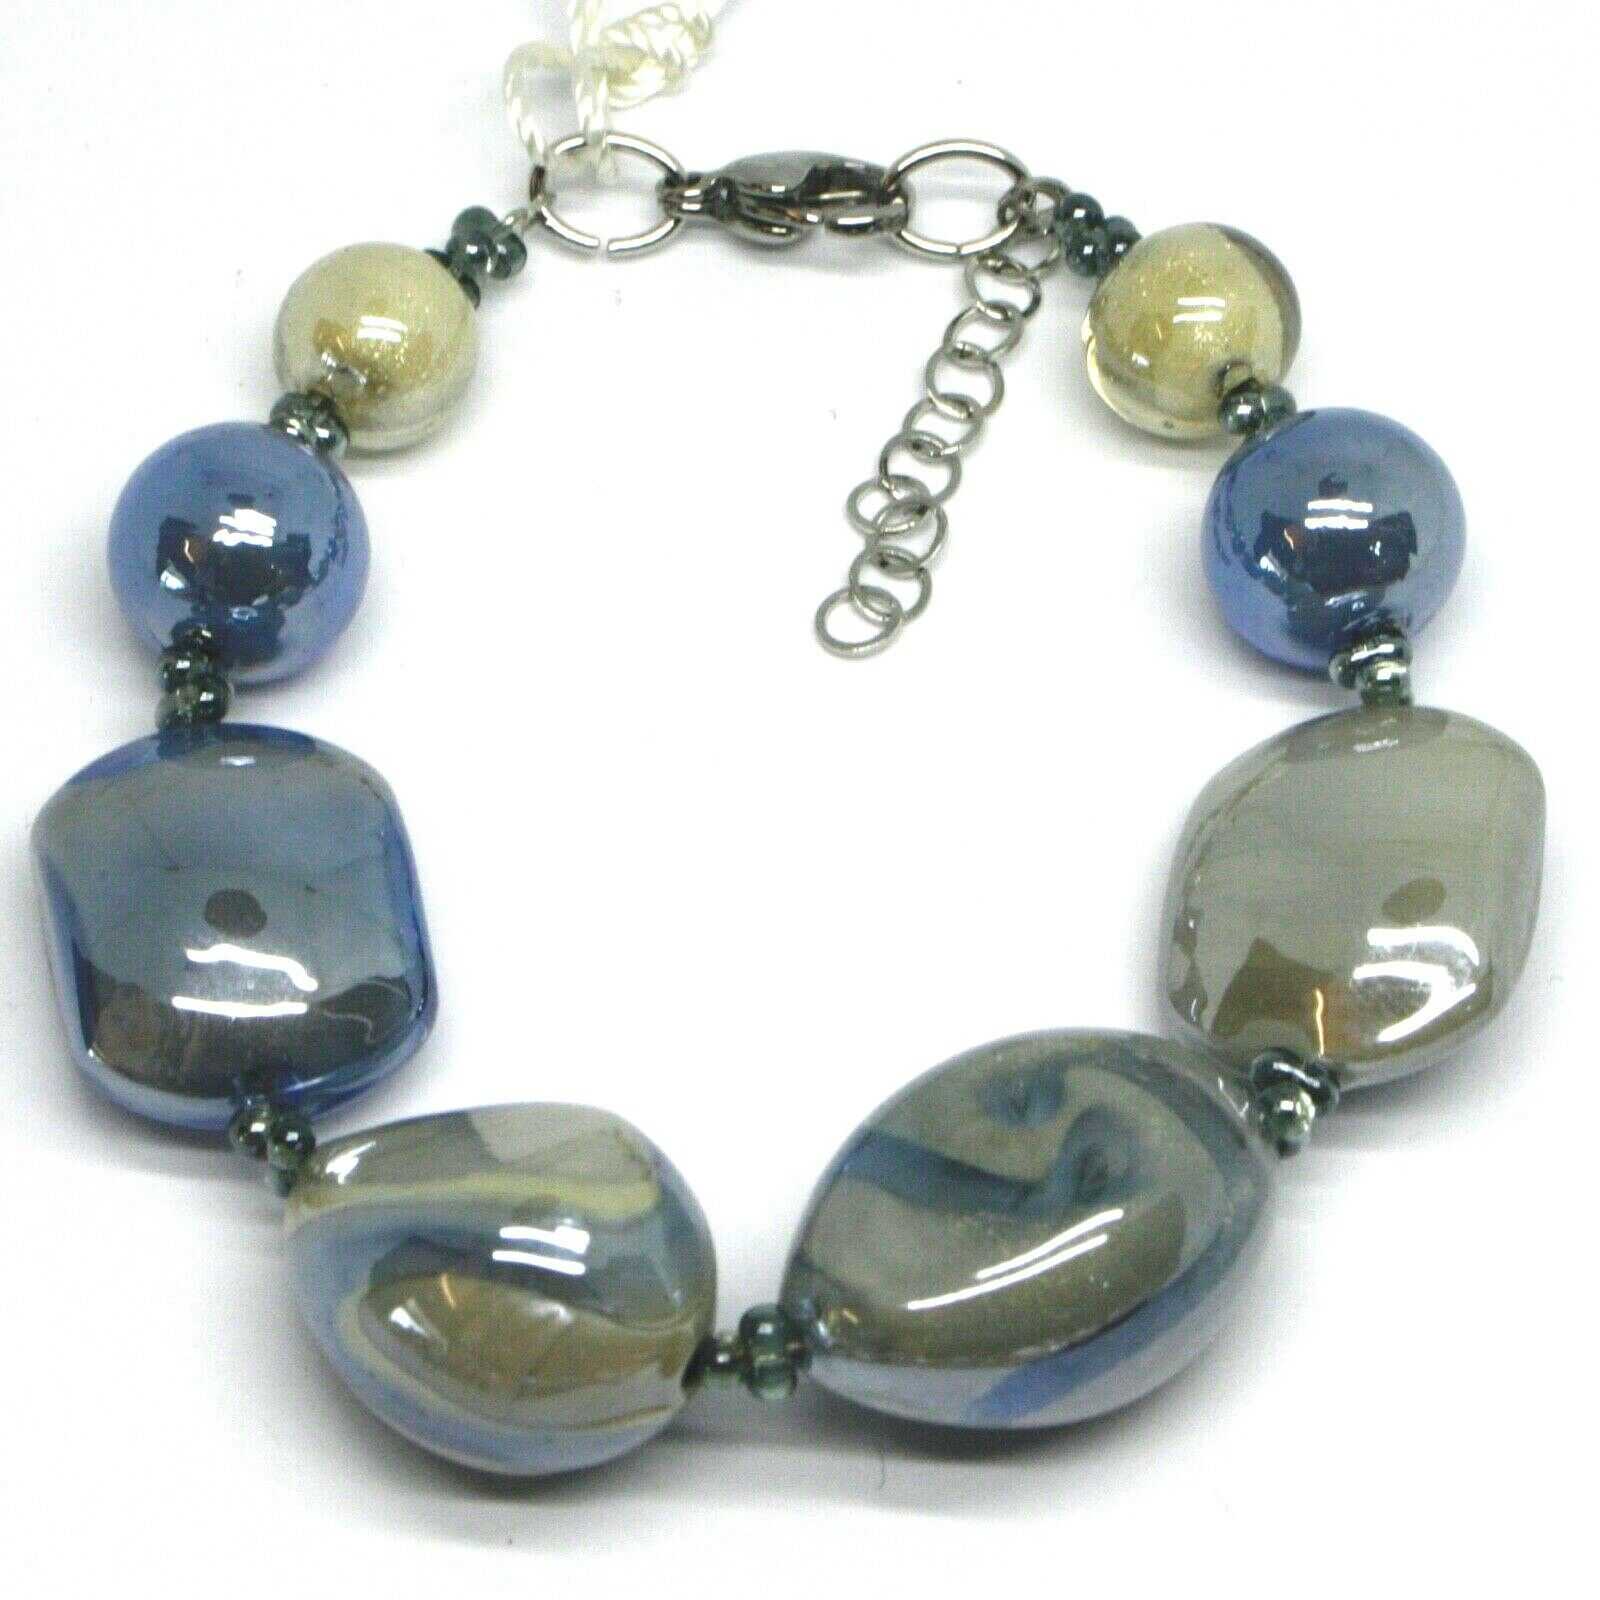 BRACELET BLUE GRAY ROUNDED DROP, SPHERE, EXAGON MURANO GLASS MADE IN ITALY